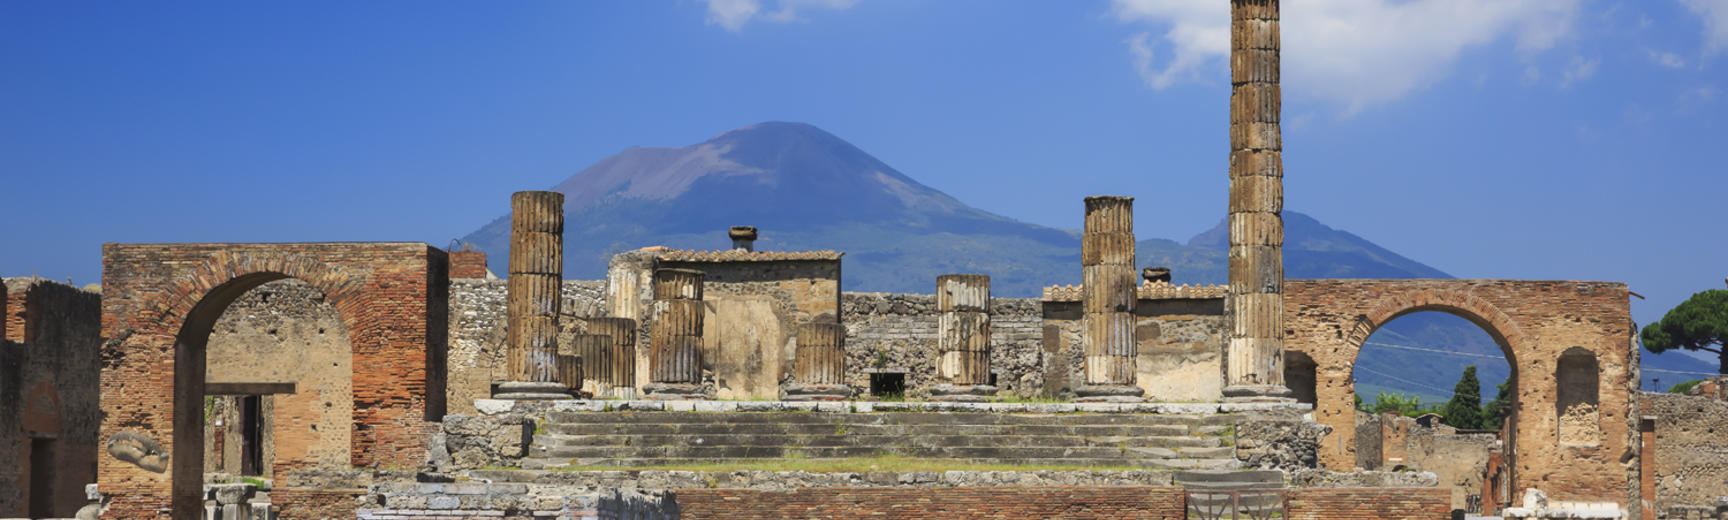 Ruins at the historical site of Pompeii, with Mount Vesuvius in the distance